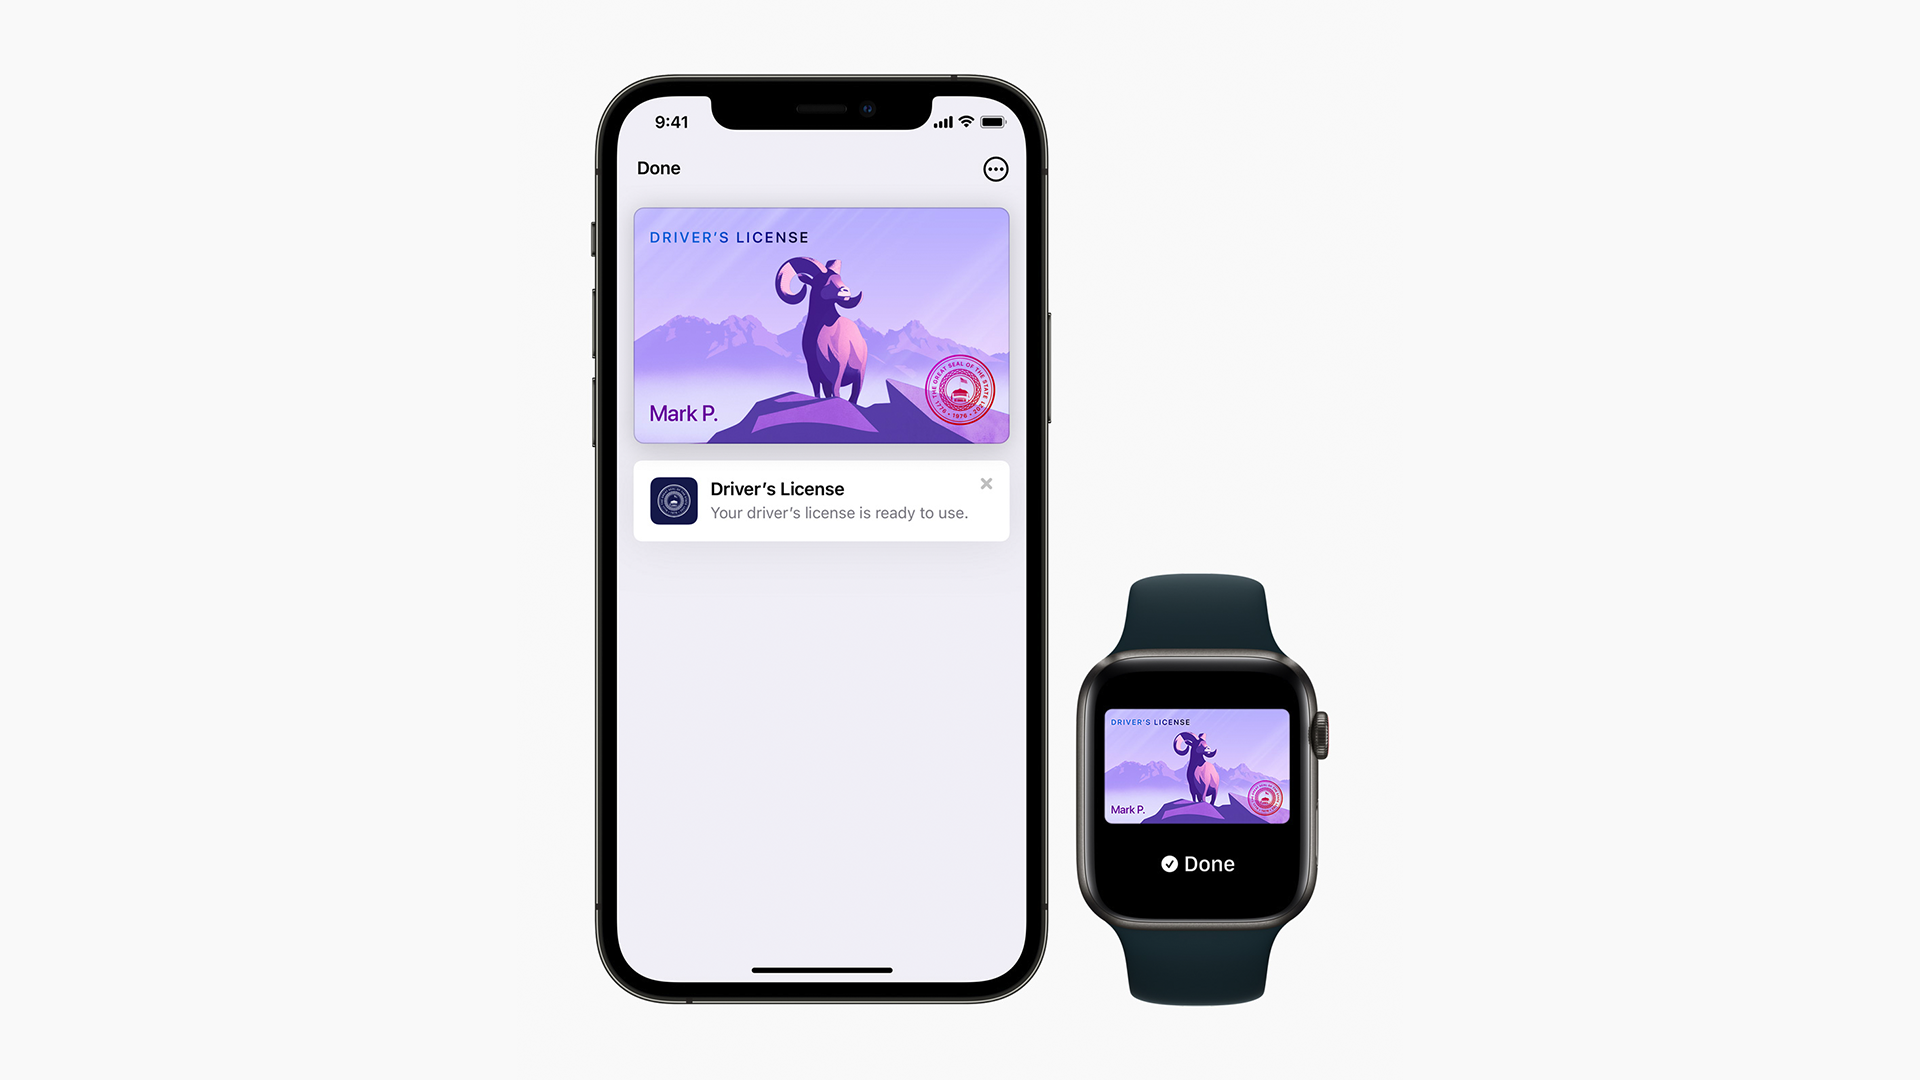 A driver's license on an iPhone and Apple Watch.